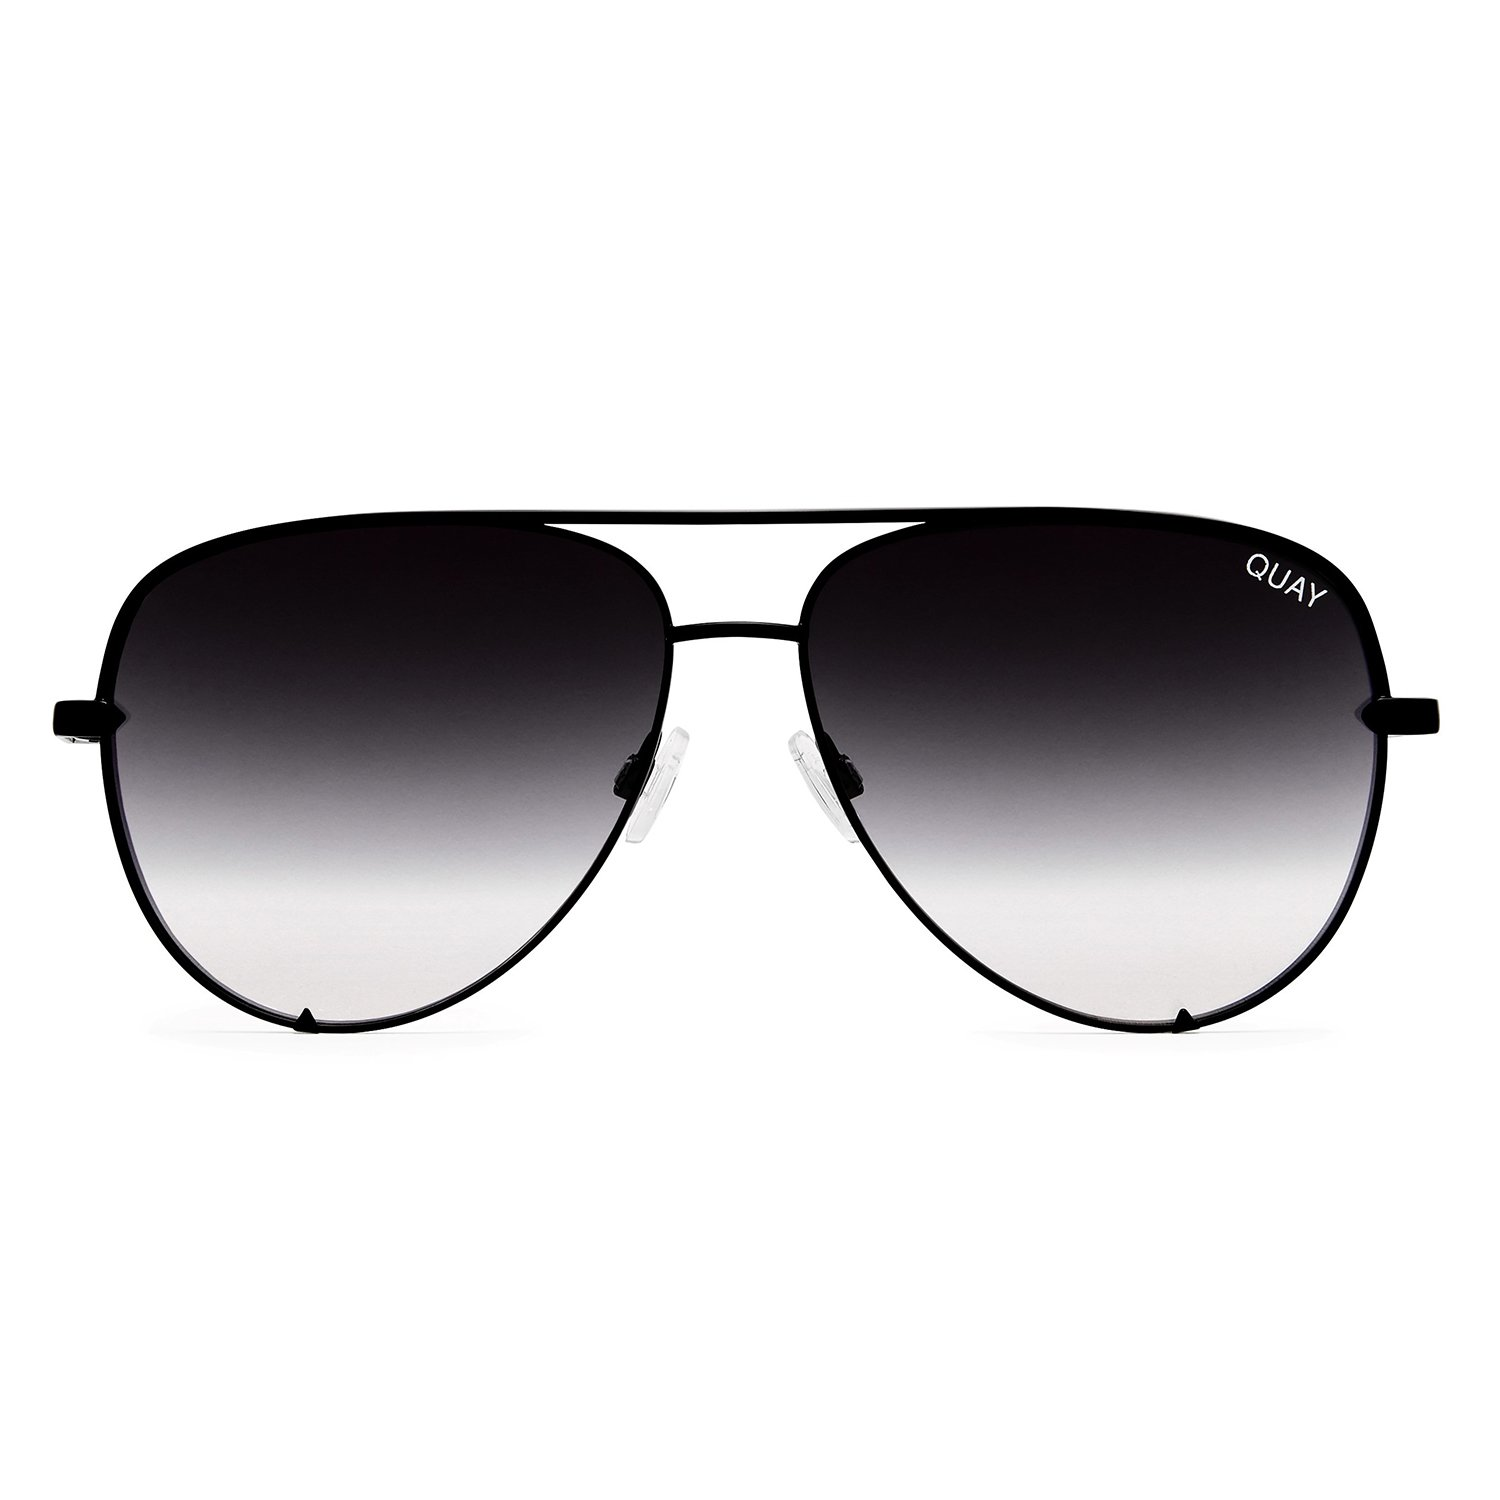 Quay Australia HIGH KEY MINI Women's Sunglasses Aviator Sunnies - Black/Fade